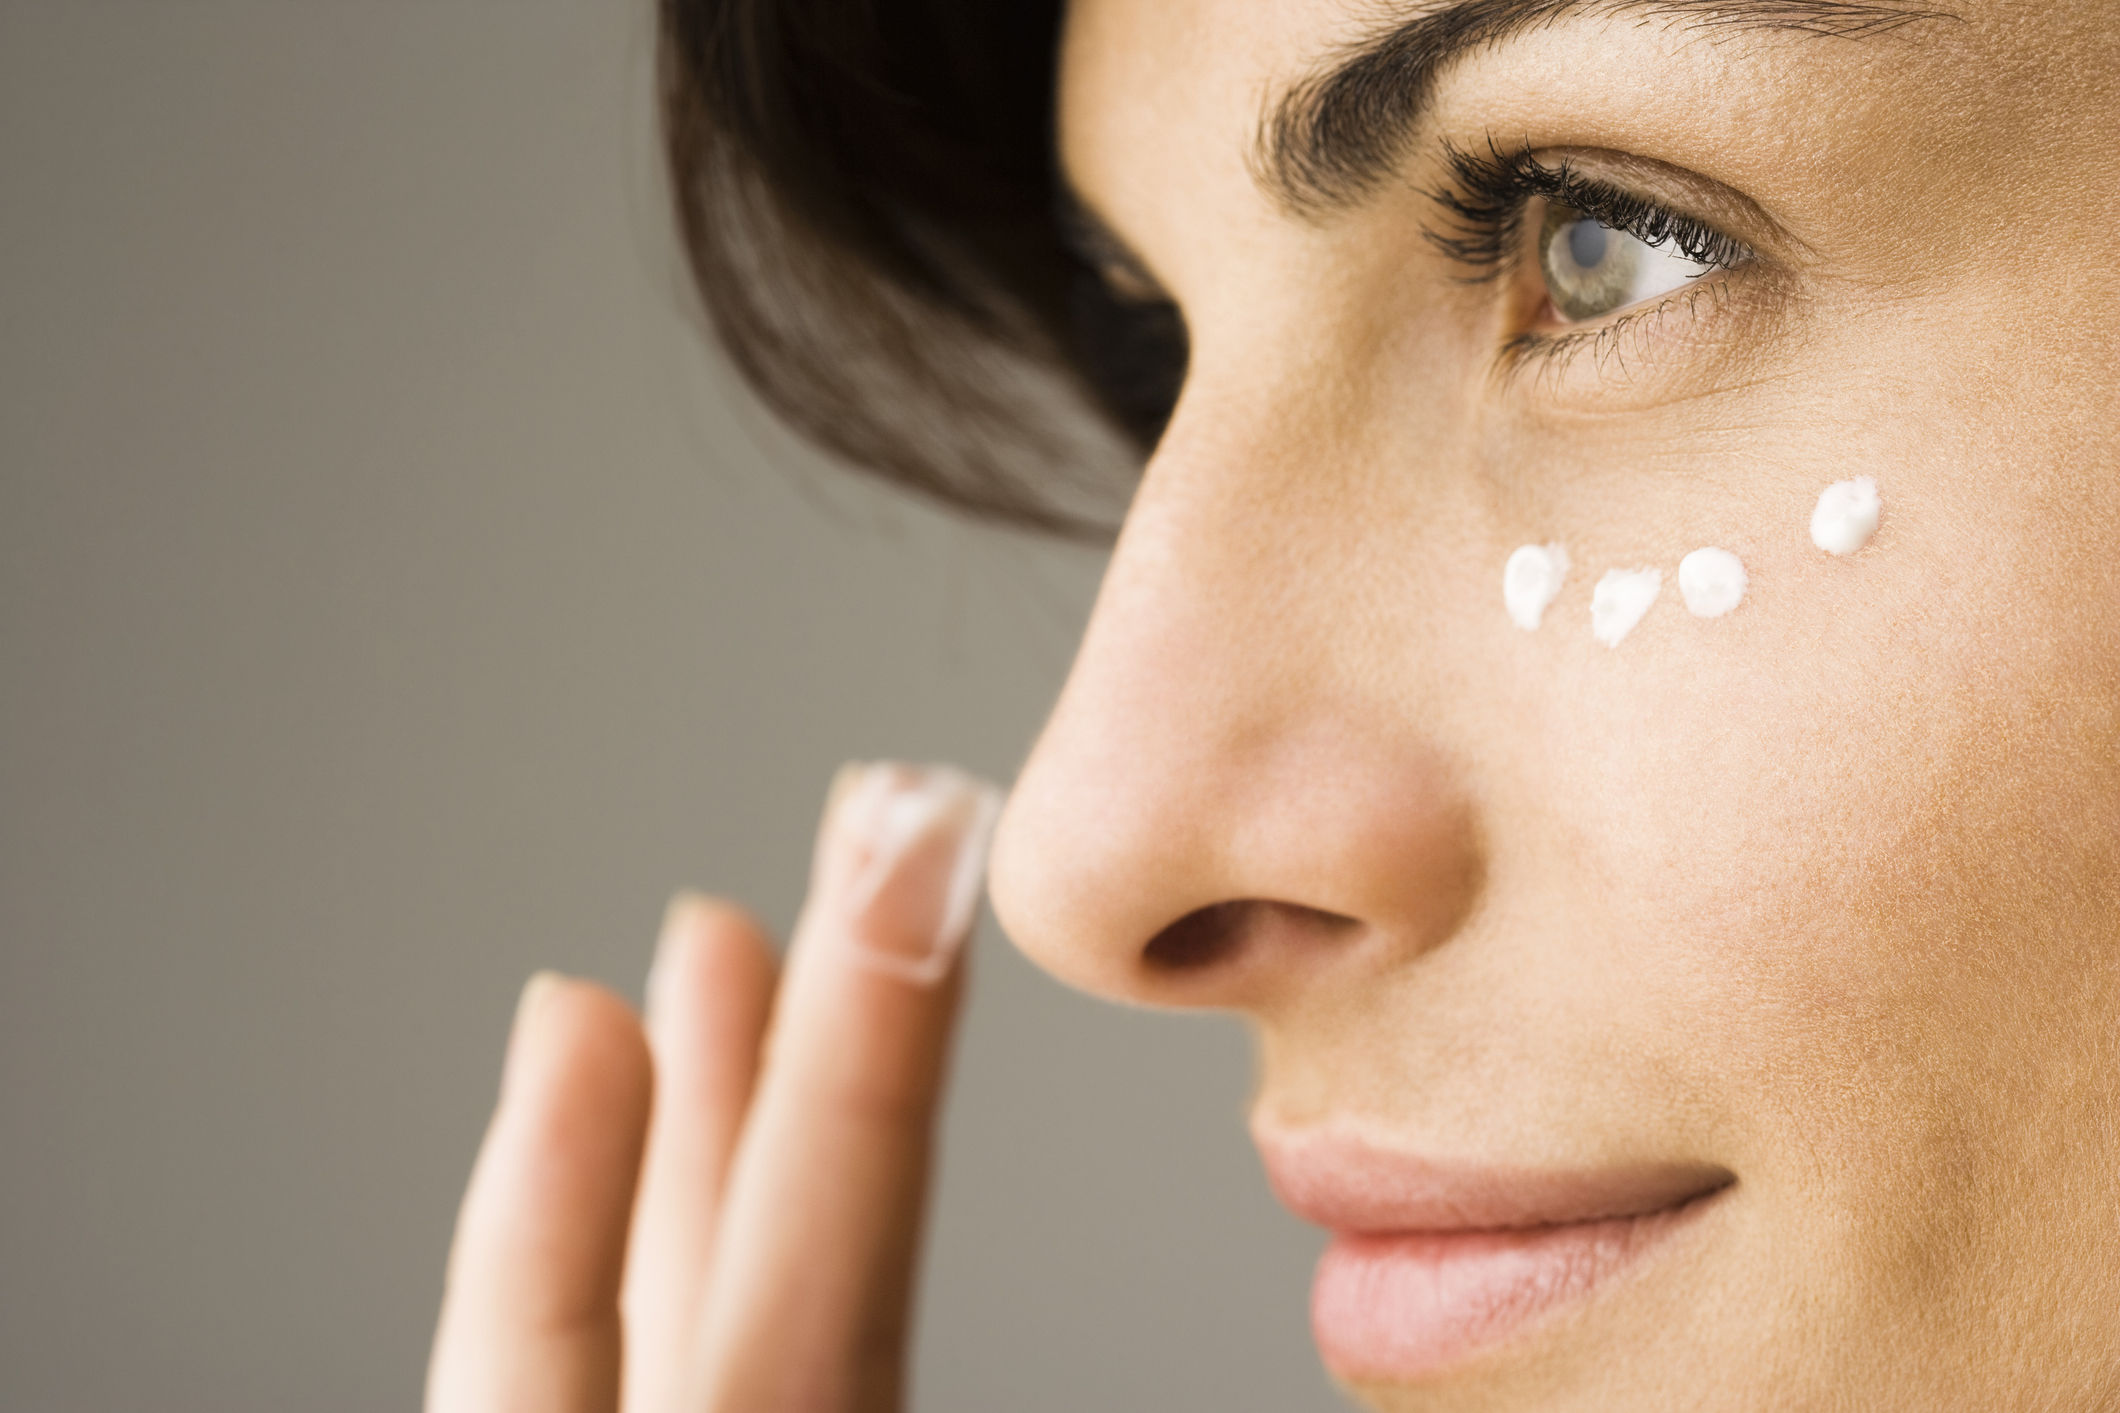 6 Foundation Mistakes That Are Secretly Making You Look Older